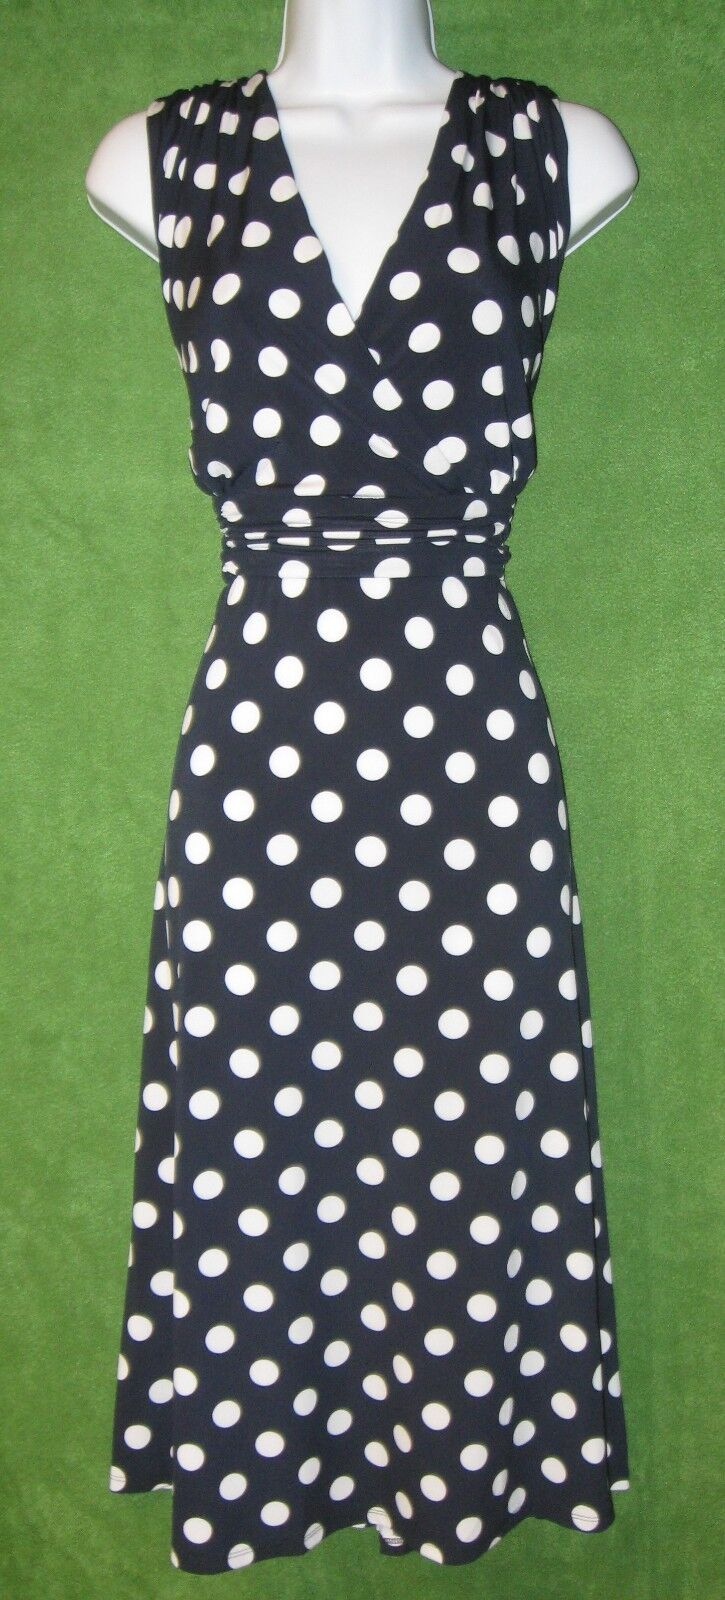 Ronnie Nicole Navy White Big Polka Dot Jersey Empire Dress 24W PLUS  MISC